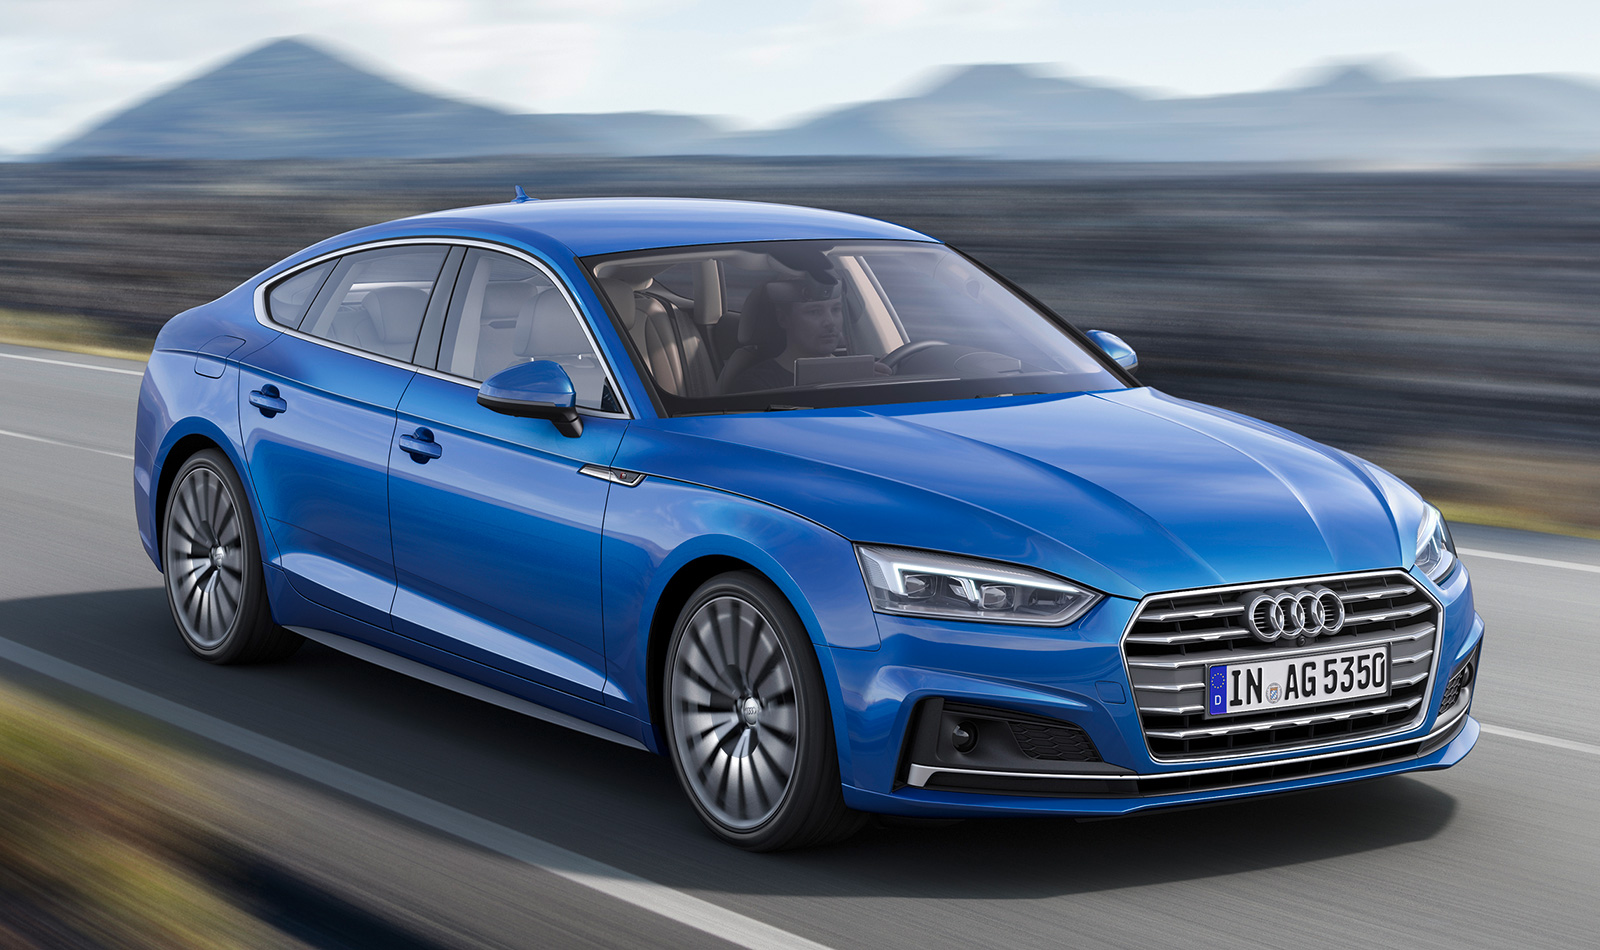 2017 Audi A5 And S5 Sportback Revealed Paris Debut Paul